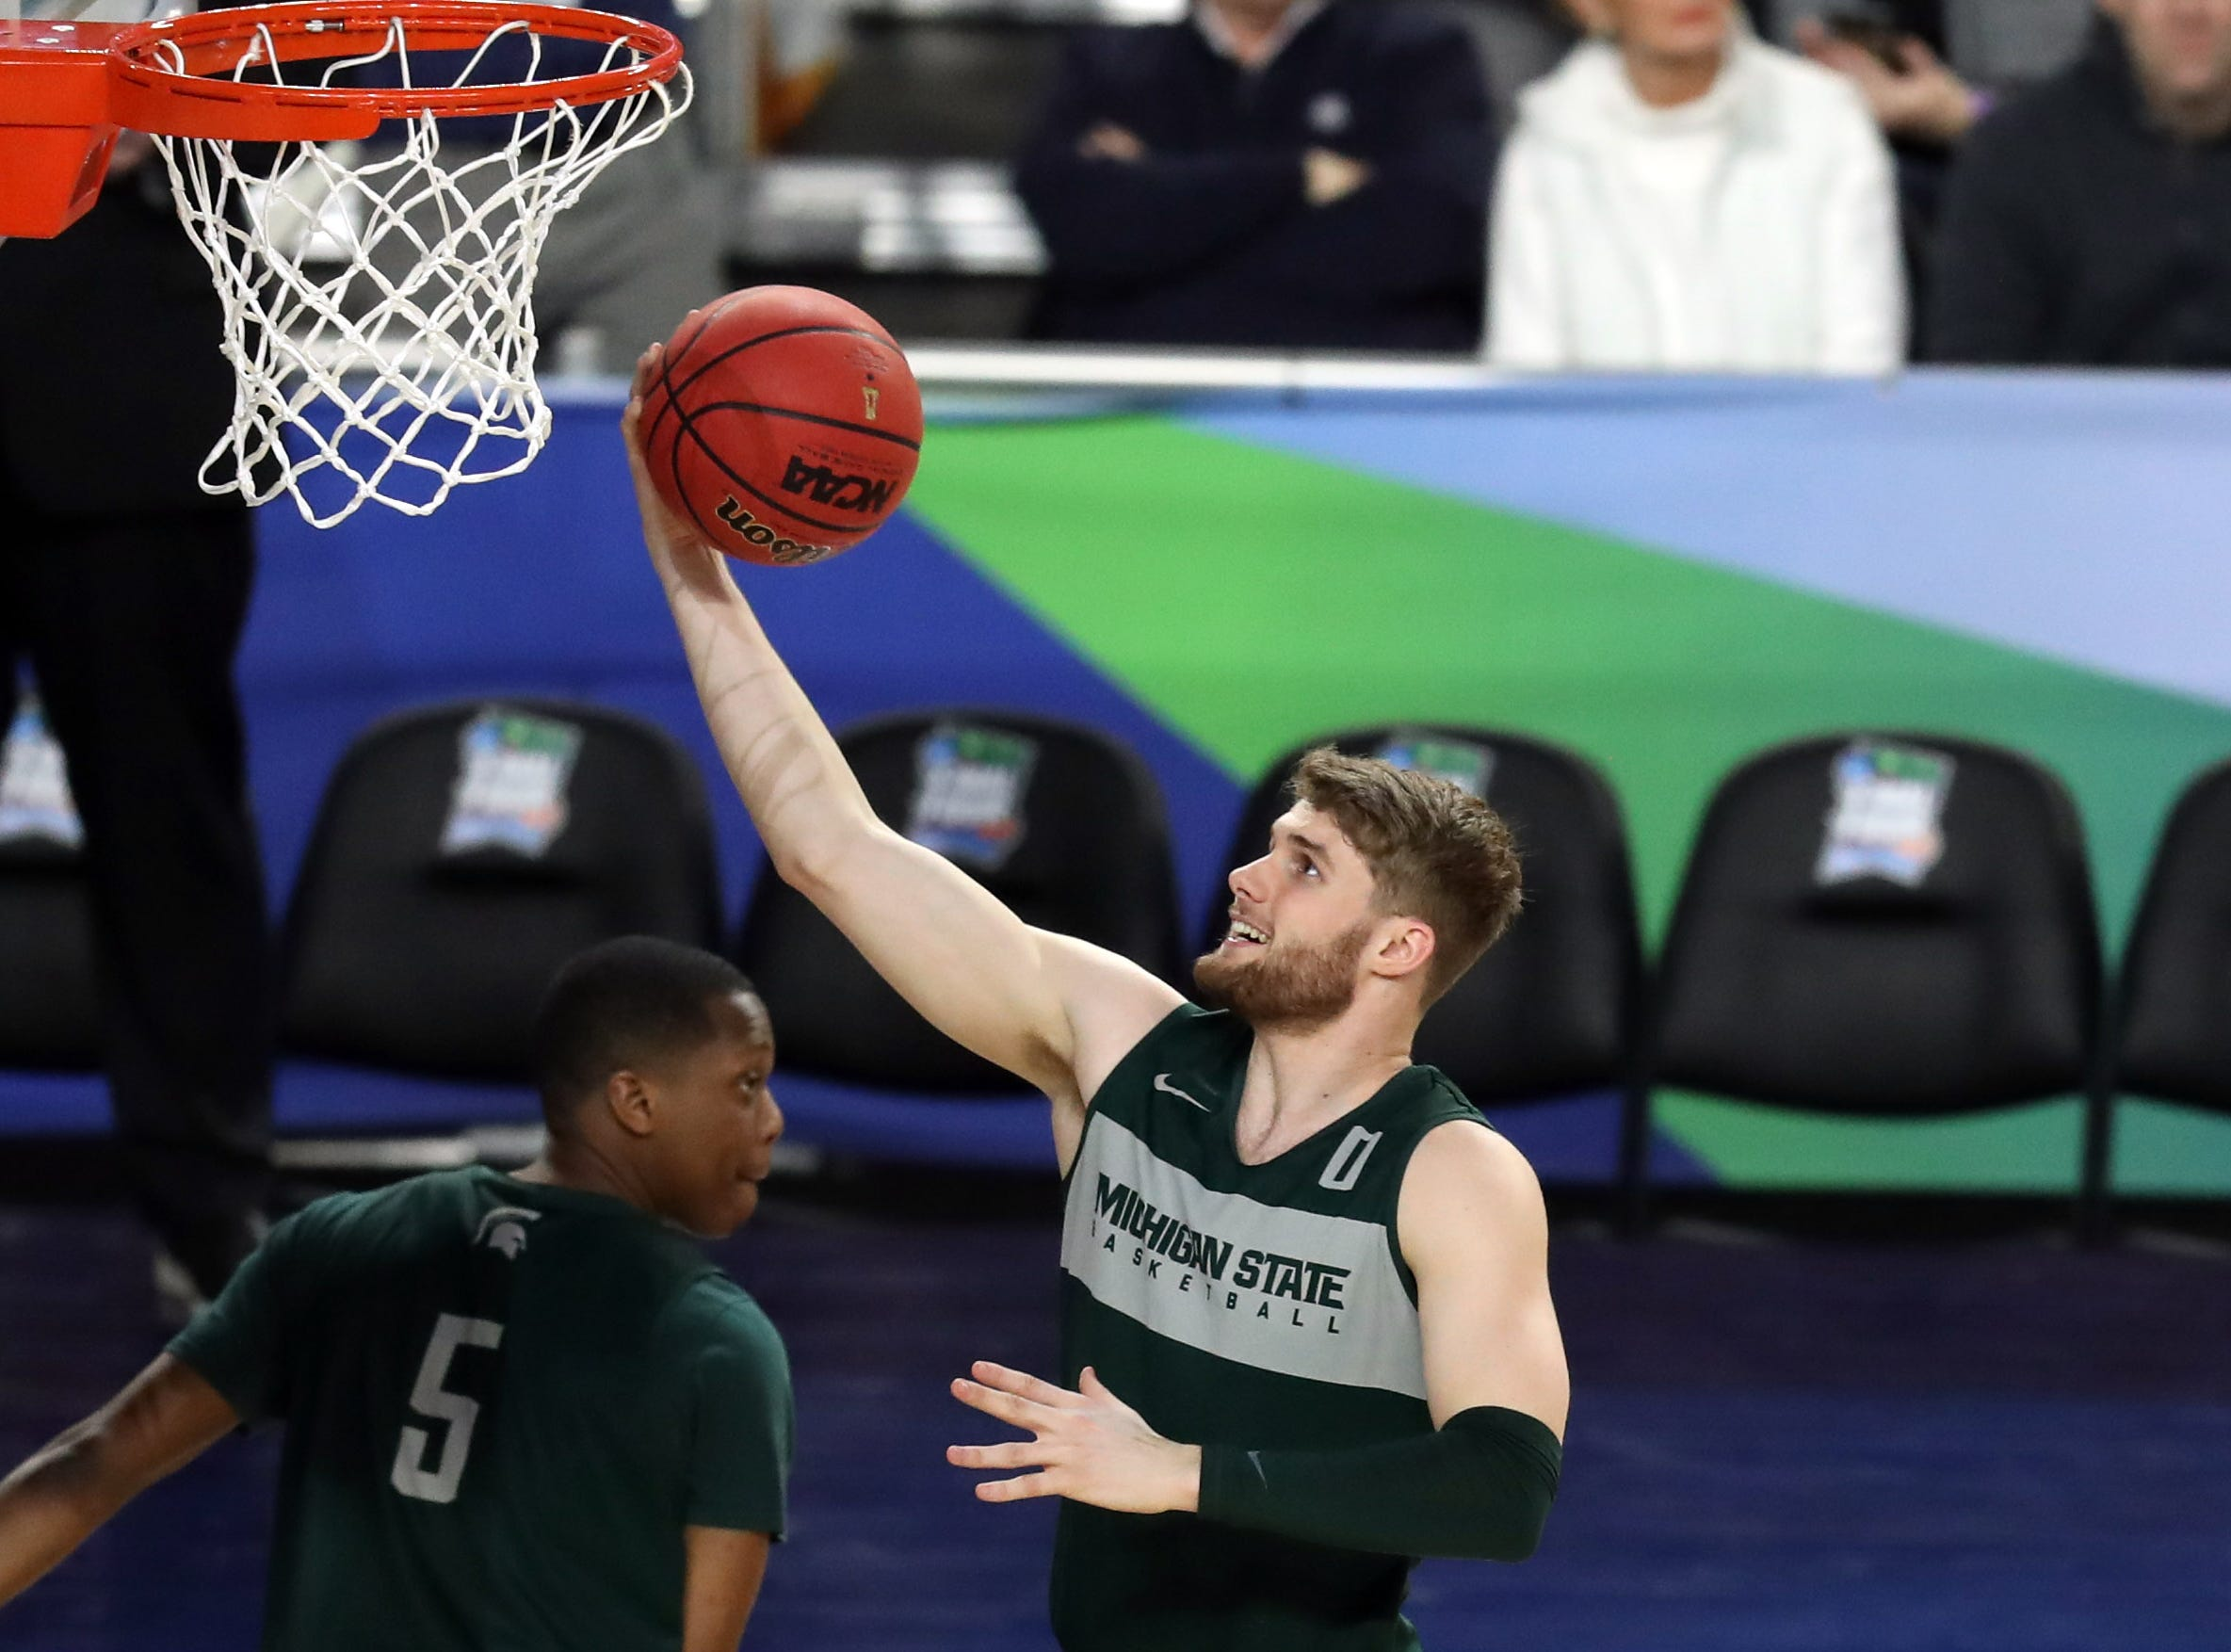 Apr 5, 2019; Minneapolis, MN, USA; Michigan State Spartans forward Kyle Ahrens (0) shoots the ball during practice for the 2019 men's Final Four at US Bank Stadium. Mandatory Credit: Brace Hemmelgarn-USA TODAY Sports